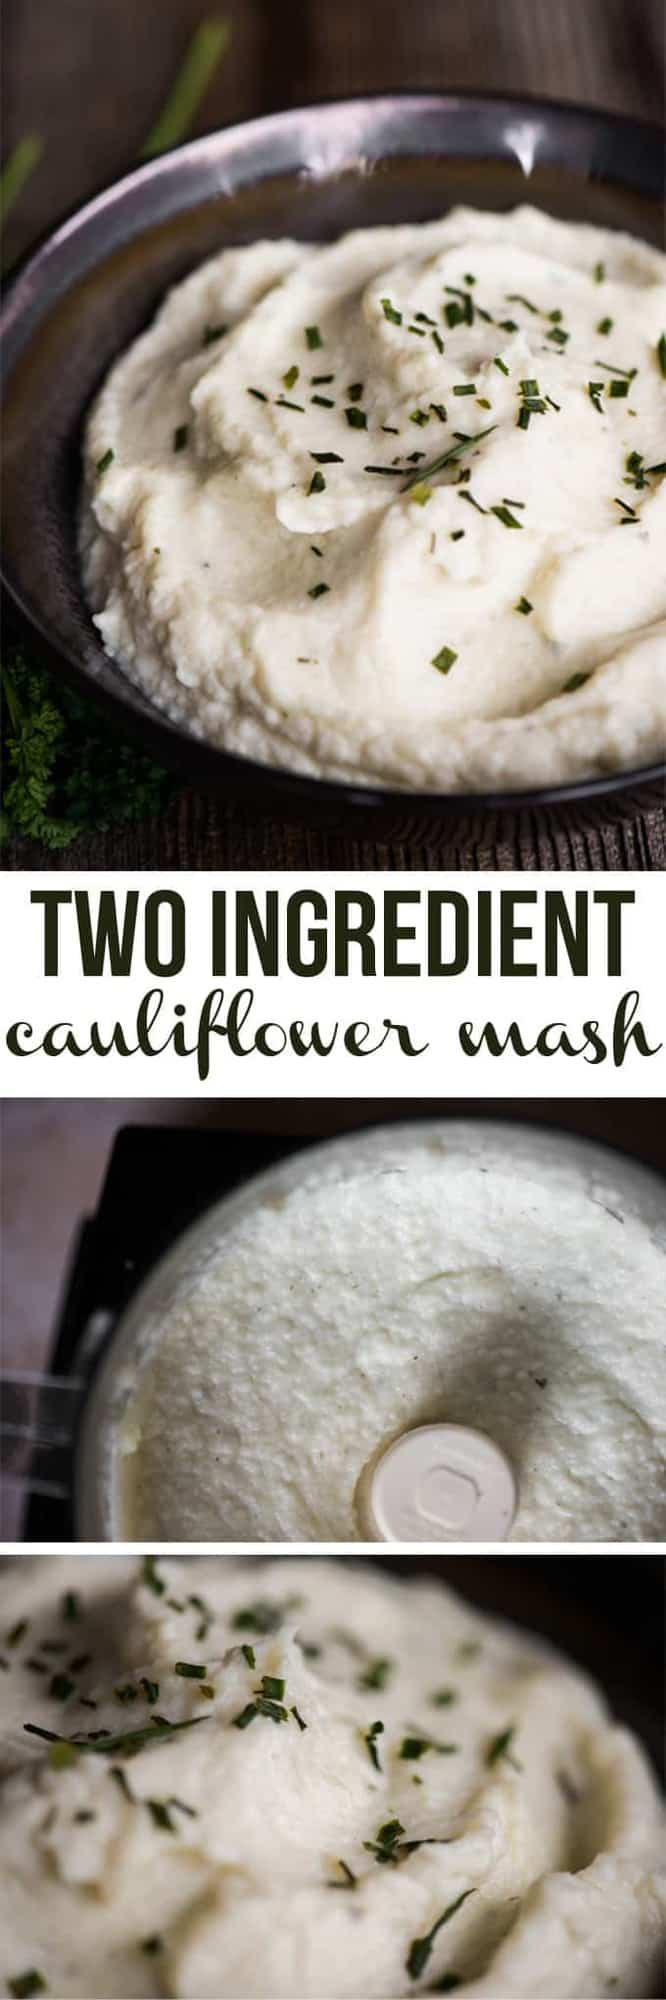 Two-Ingredient Cauliflower Mash is a quick, easy, healthy, low carb side dish that is so rich and delicious that you might actually mistake the flavorful cauliflower for creamy mashed potatoes! #cauliflowermashedpotatoes #cauliflowermash #mashedcauliflower #twoingredient